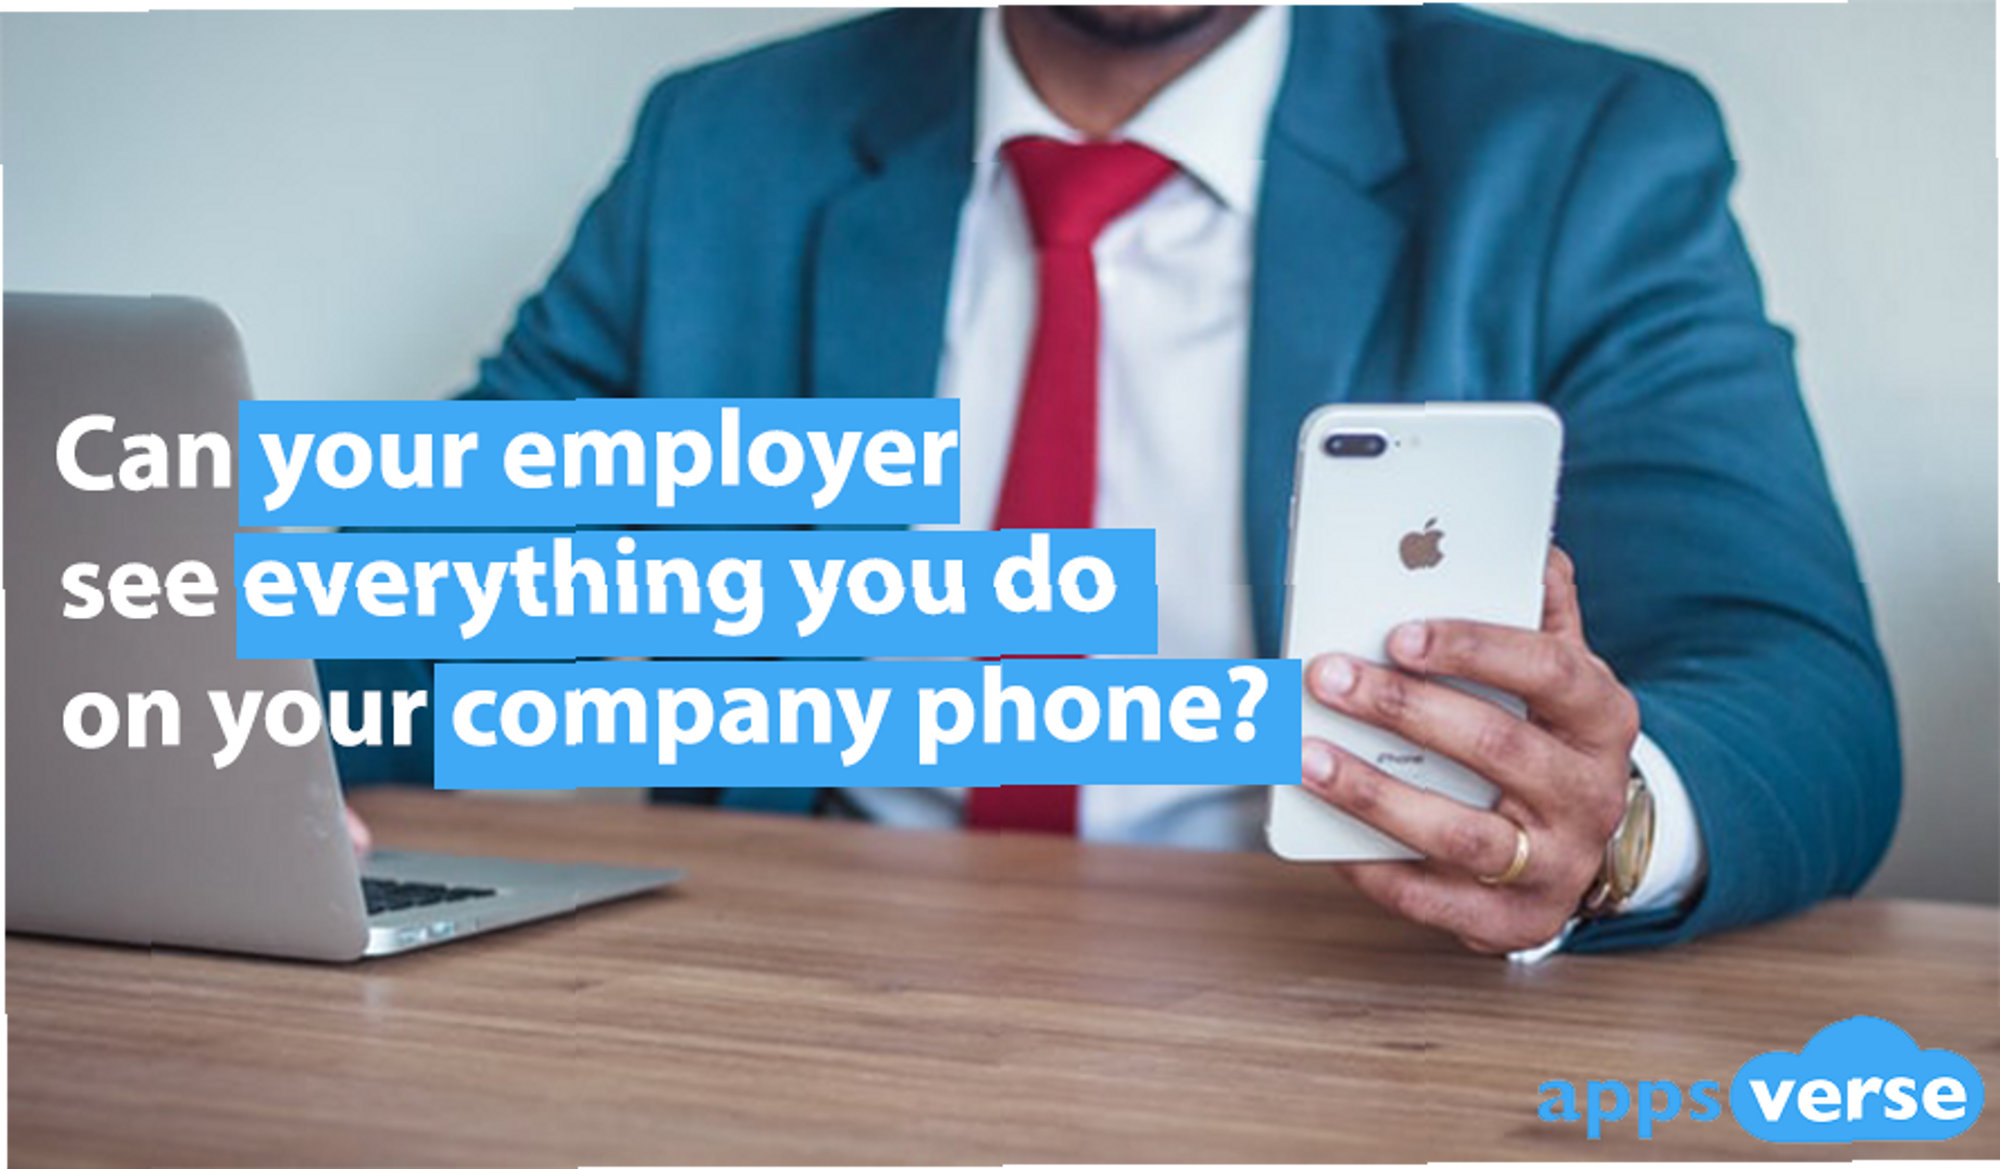 Can your employer see everything you do on your company phone?